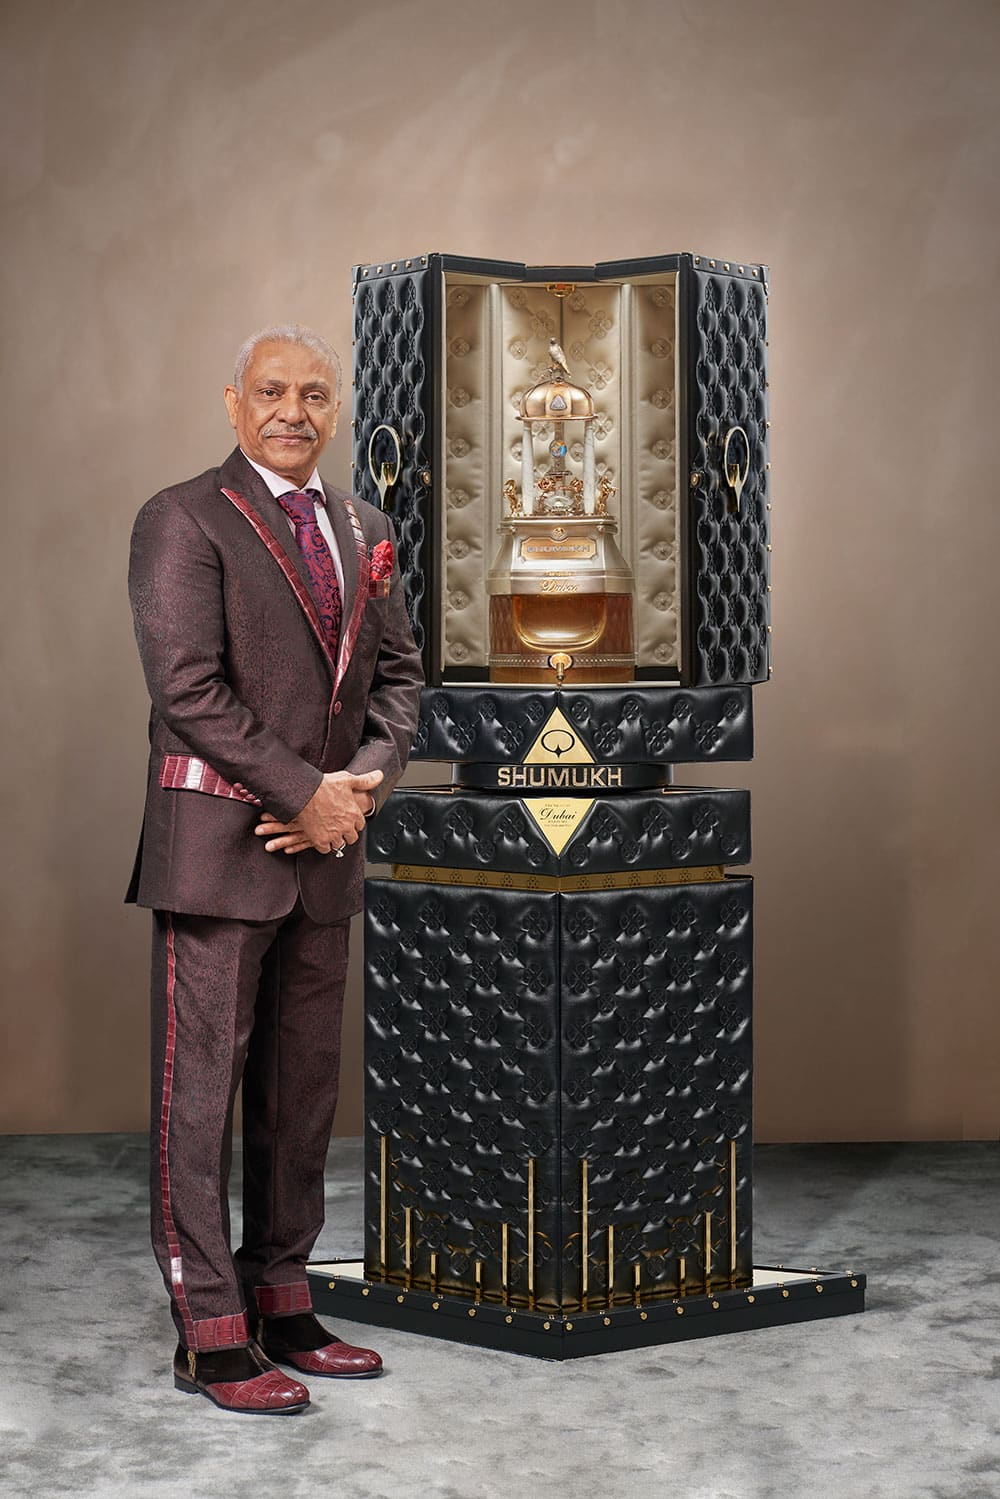 Ashgar adam ali mostexpensiveperfumes resources1 - 5 things you should know about the world's most expensive perfume